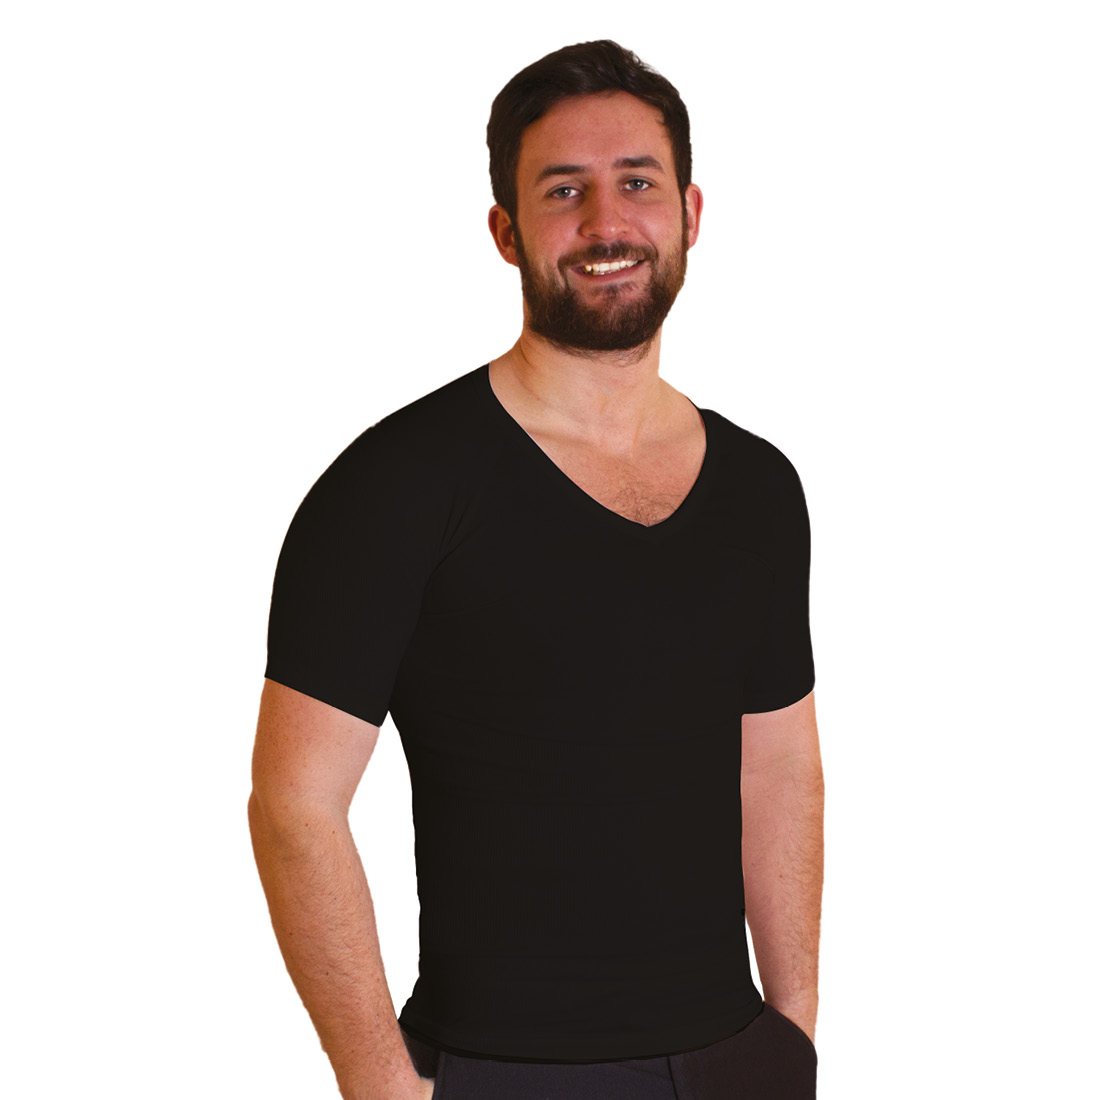 An image of Tone Tee Black T-shirt Large